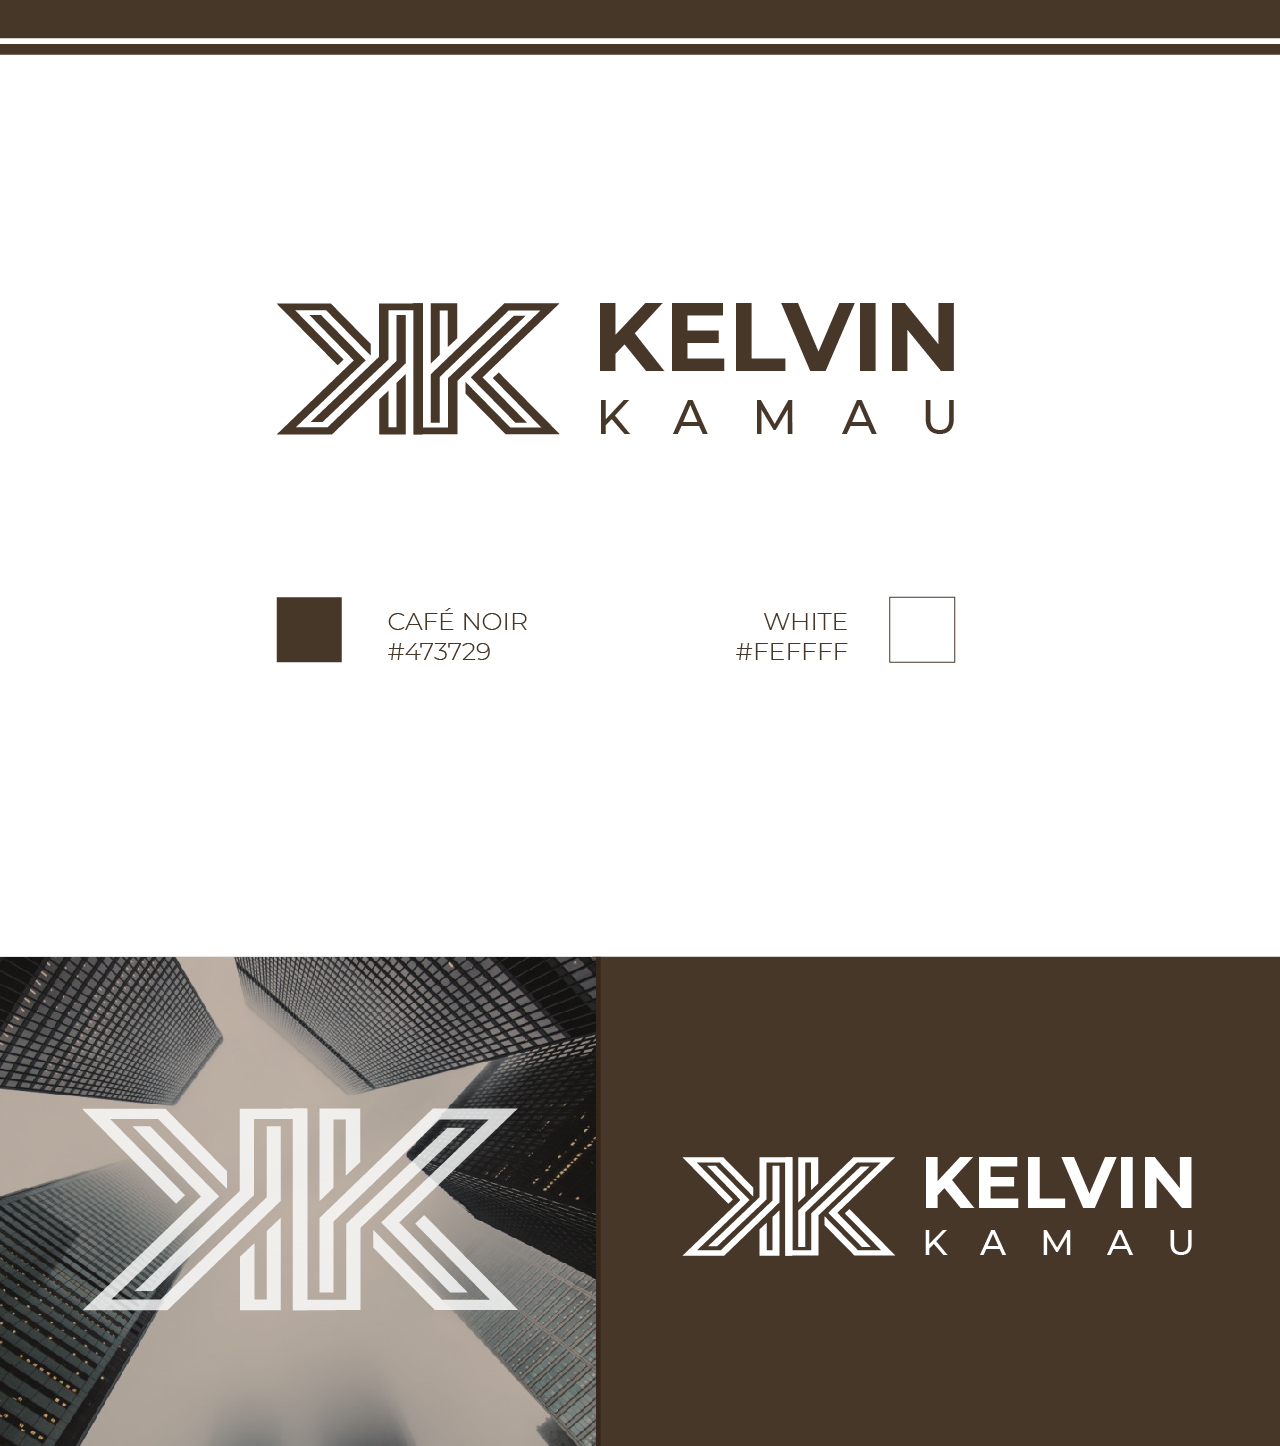 If Youre In Search For Someone Who Can Design A Memorable Versatile And Relevant Logo Your Business Im Guy The Following Are Some Samples Of